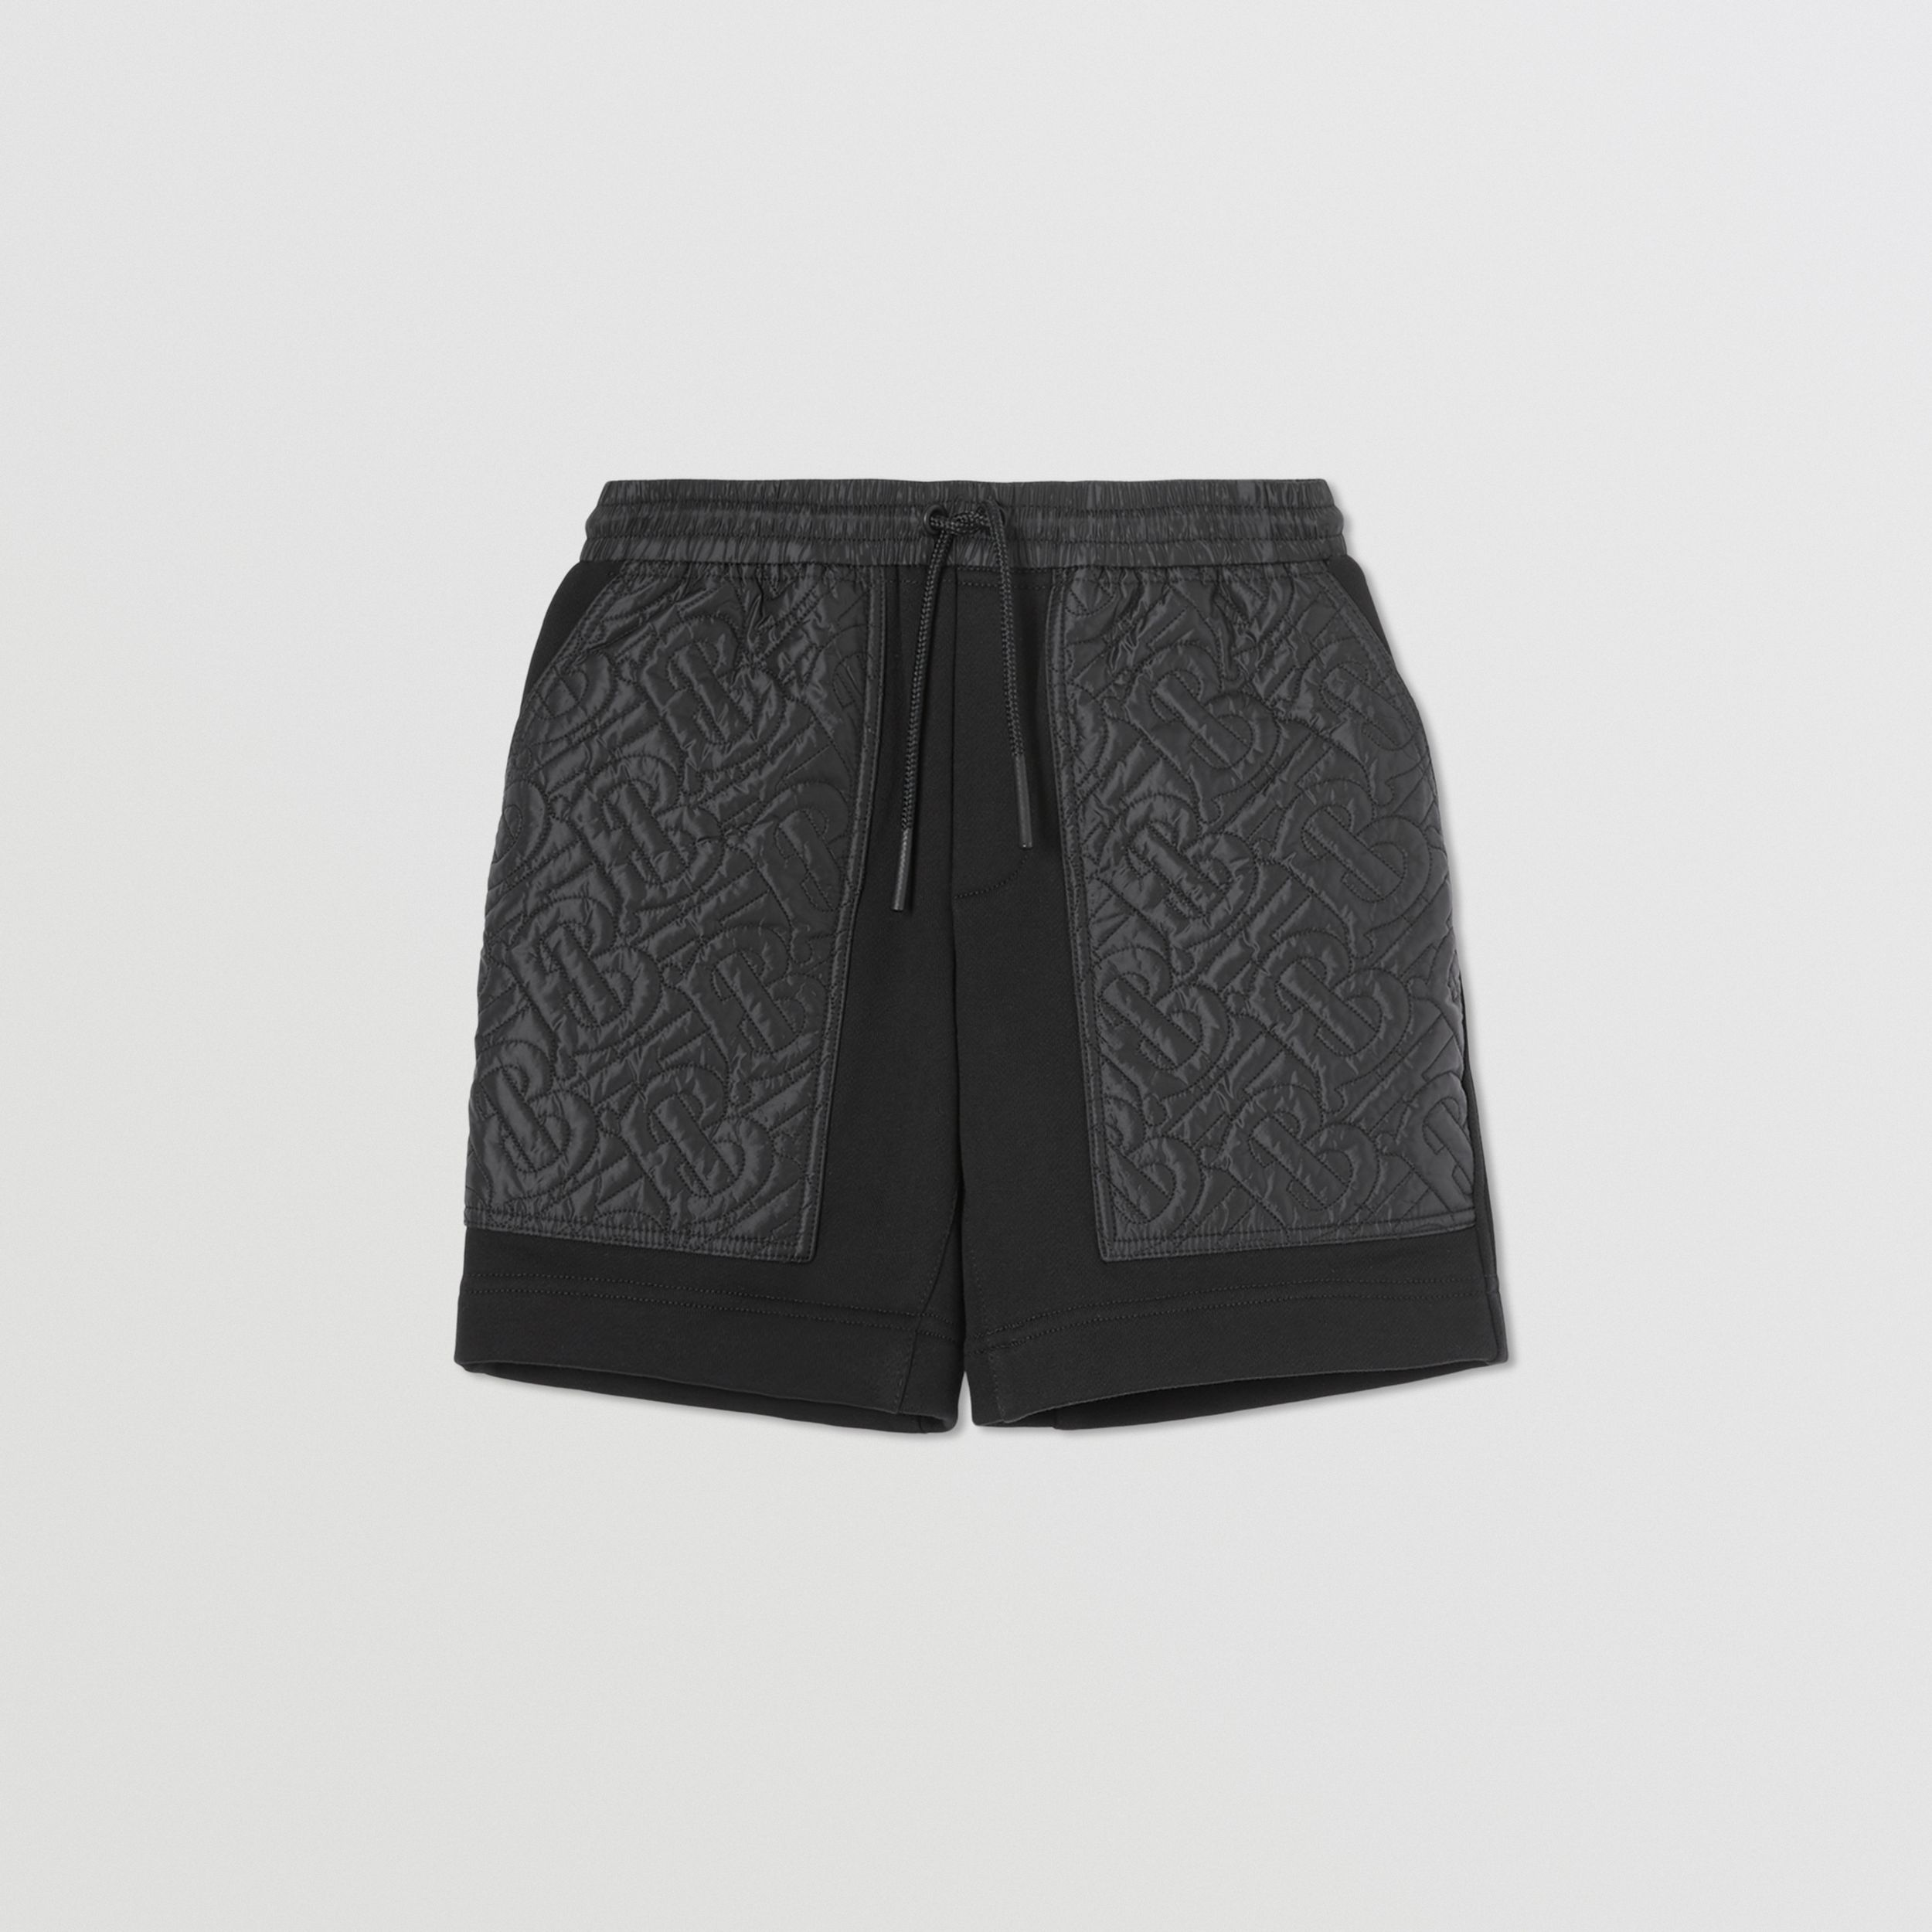 Monogram Quilted Panel Cotton Shorts in Black | Burberry - 1